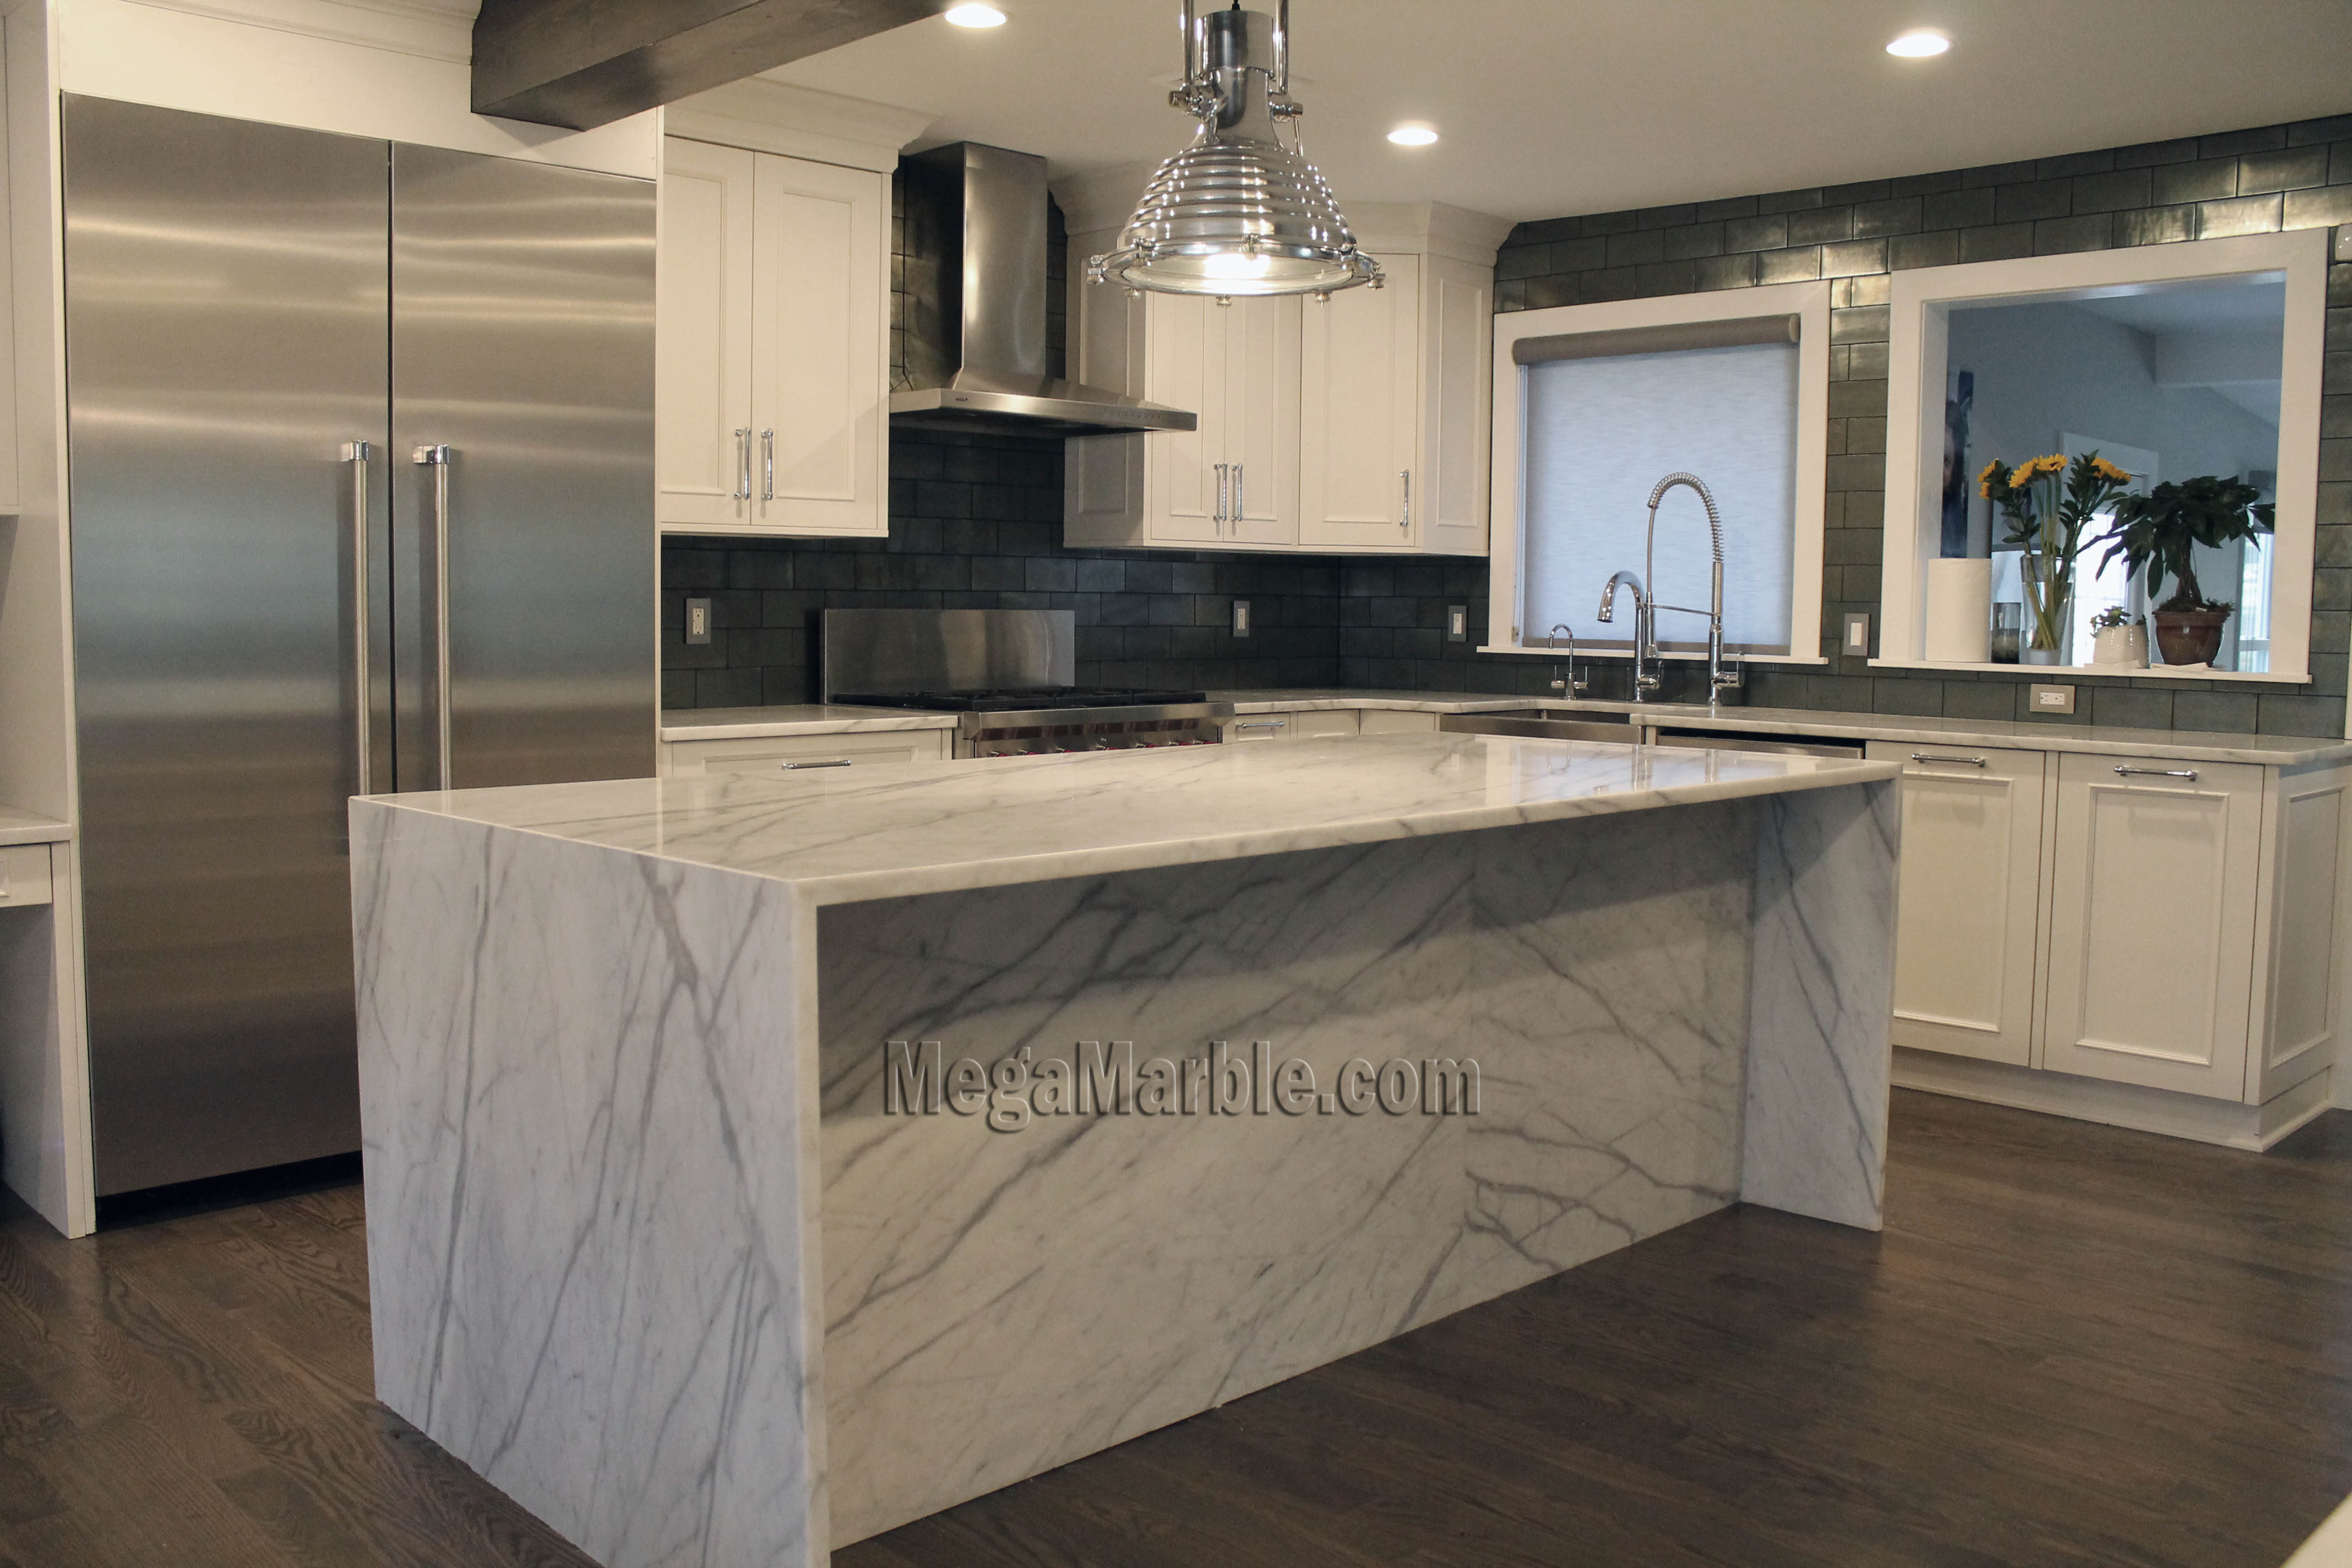 Kitchen Countertops Design In The Hamptons NY Countertops For - Hamptons kitchen design